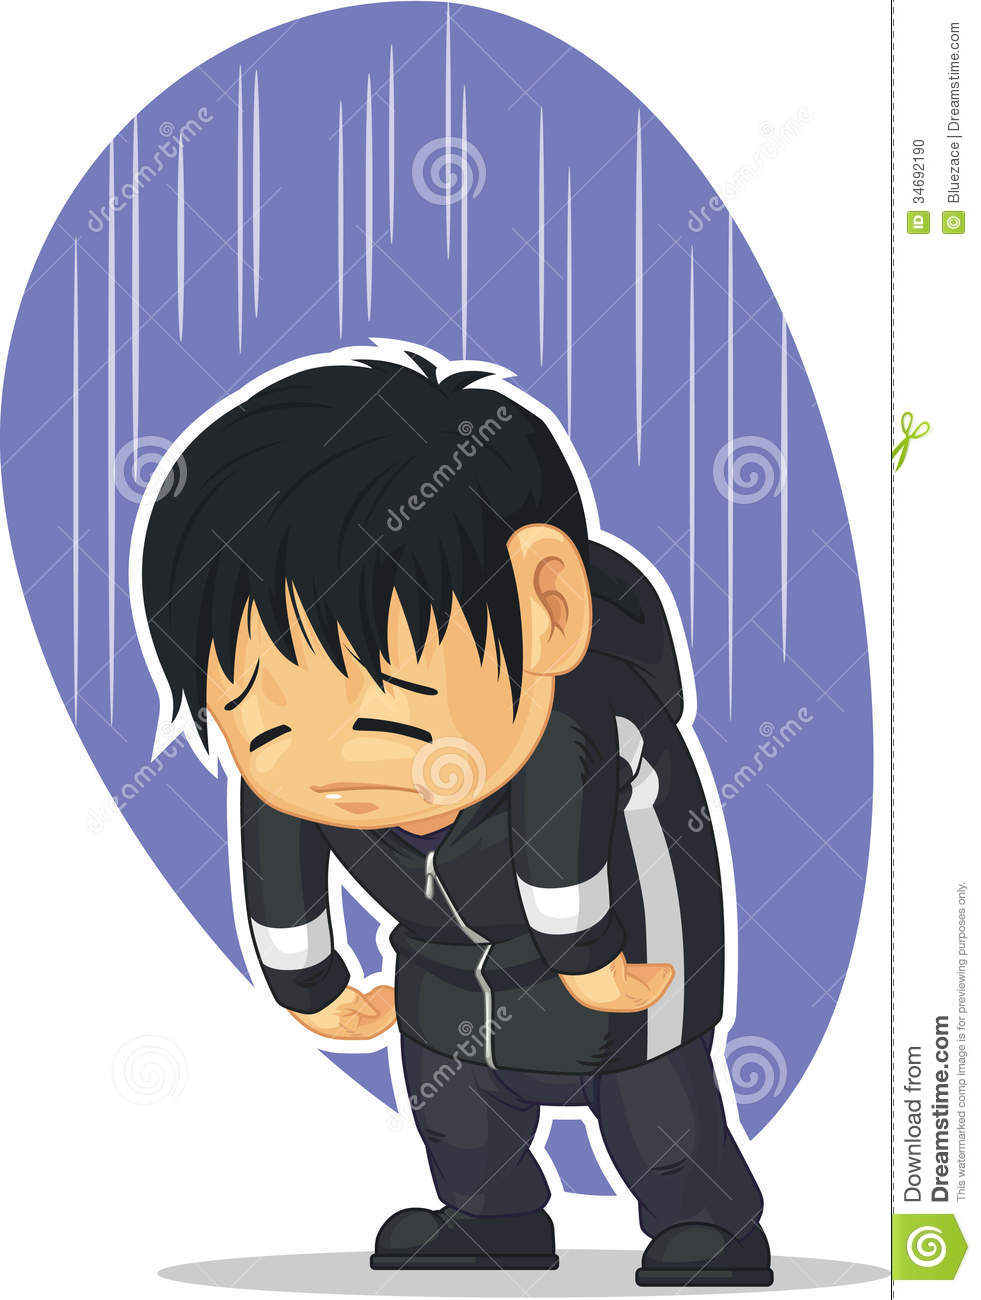 A vector image of a kid feeling depressed and sad drawn in cartoon style this vector is very good for design that need sadness concept in cute funny